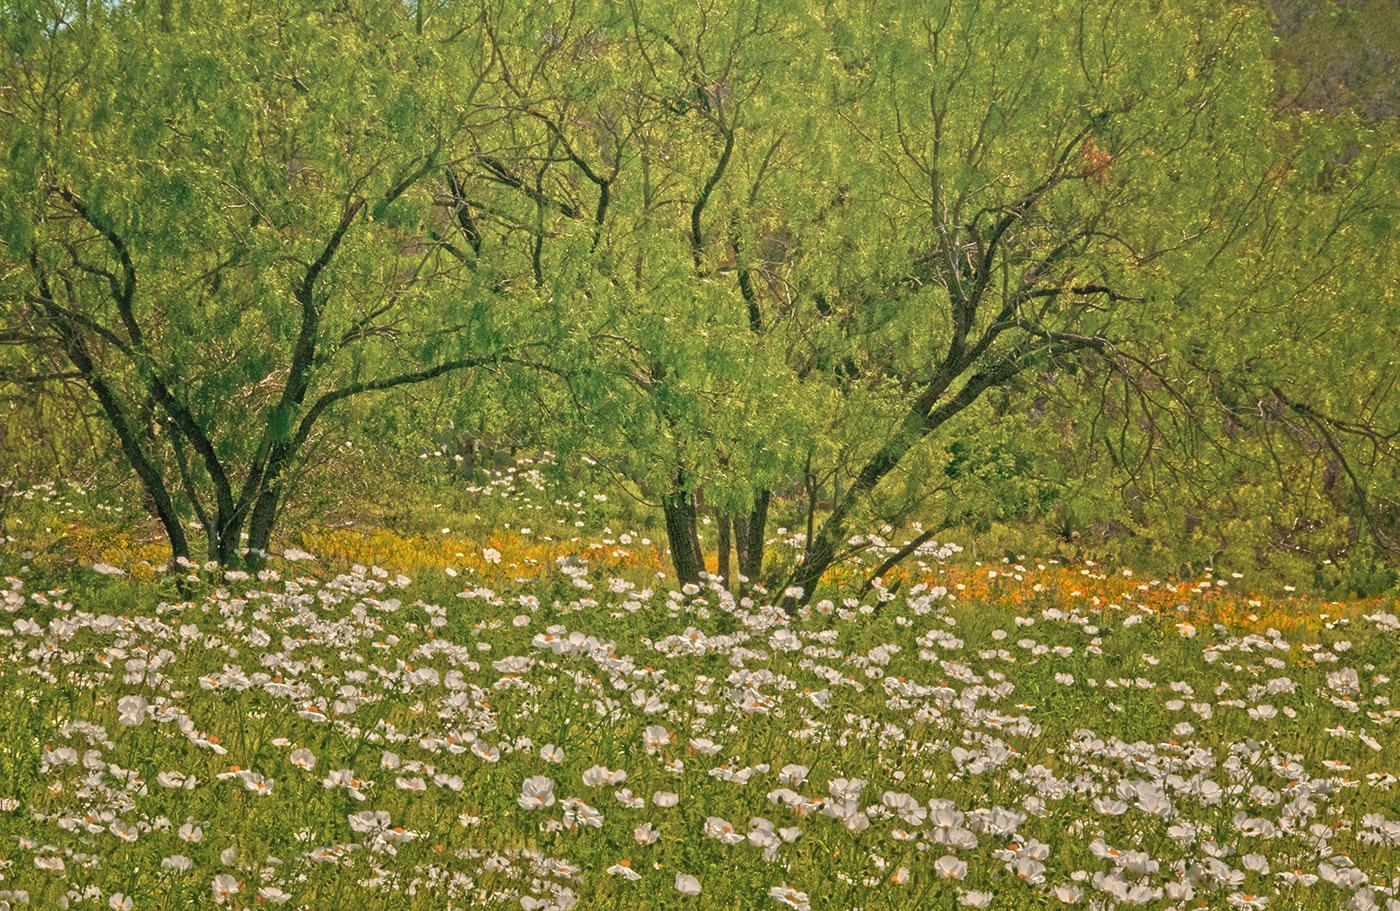 Willow - West Texas Hill Country landscape, lush trees, white & yellow flowers